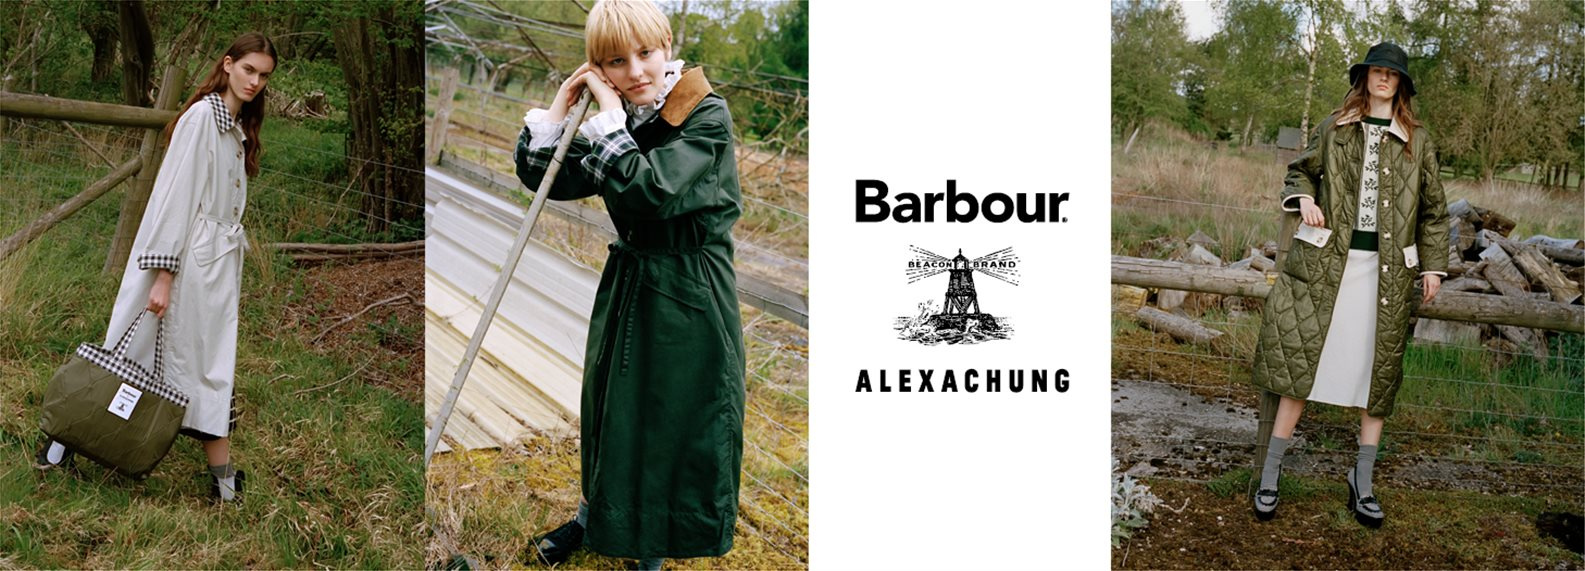 BARBOUR BY ALEXACHUNG image